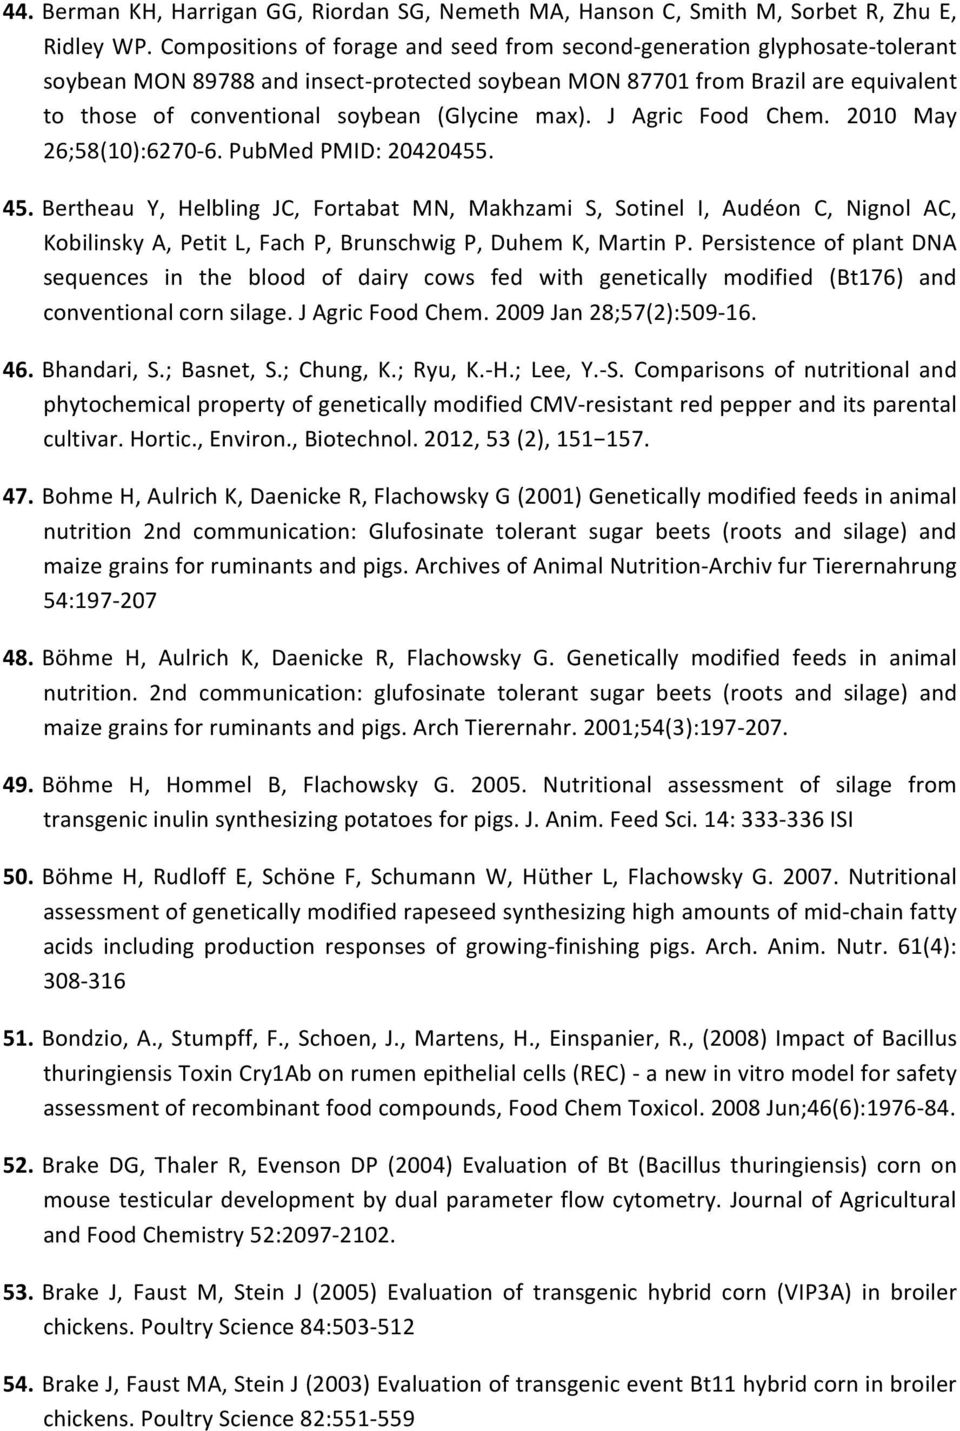 (Glycine max). J Agric Food Chem. 2010 May 26;58(10):6270-6. PubMed PMID: 20420455. 45.